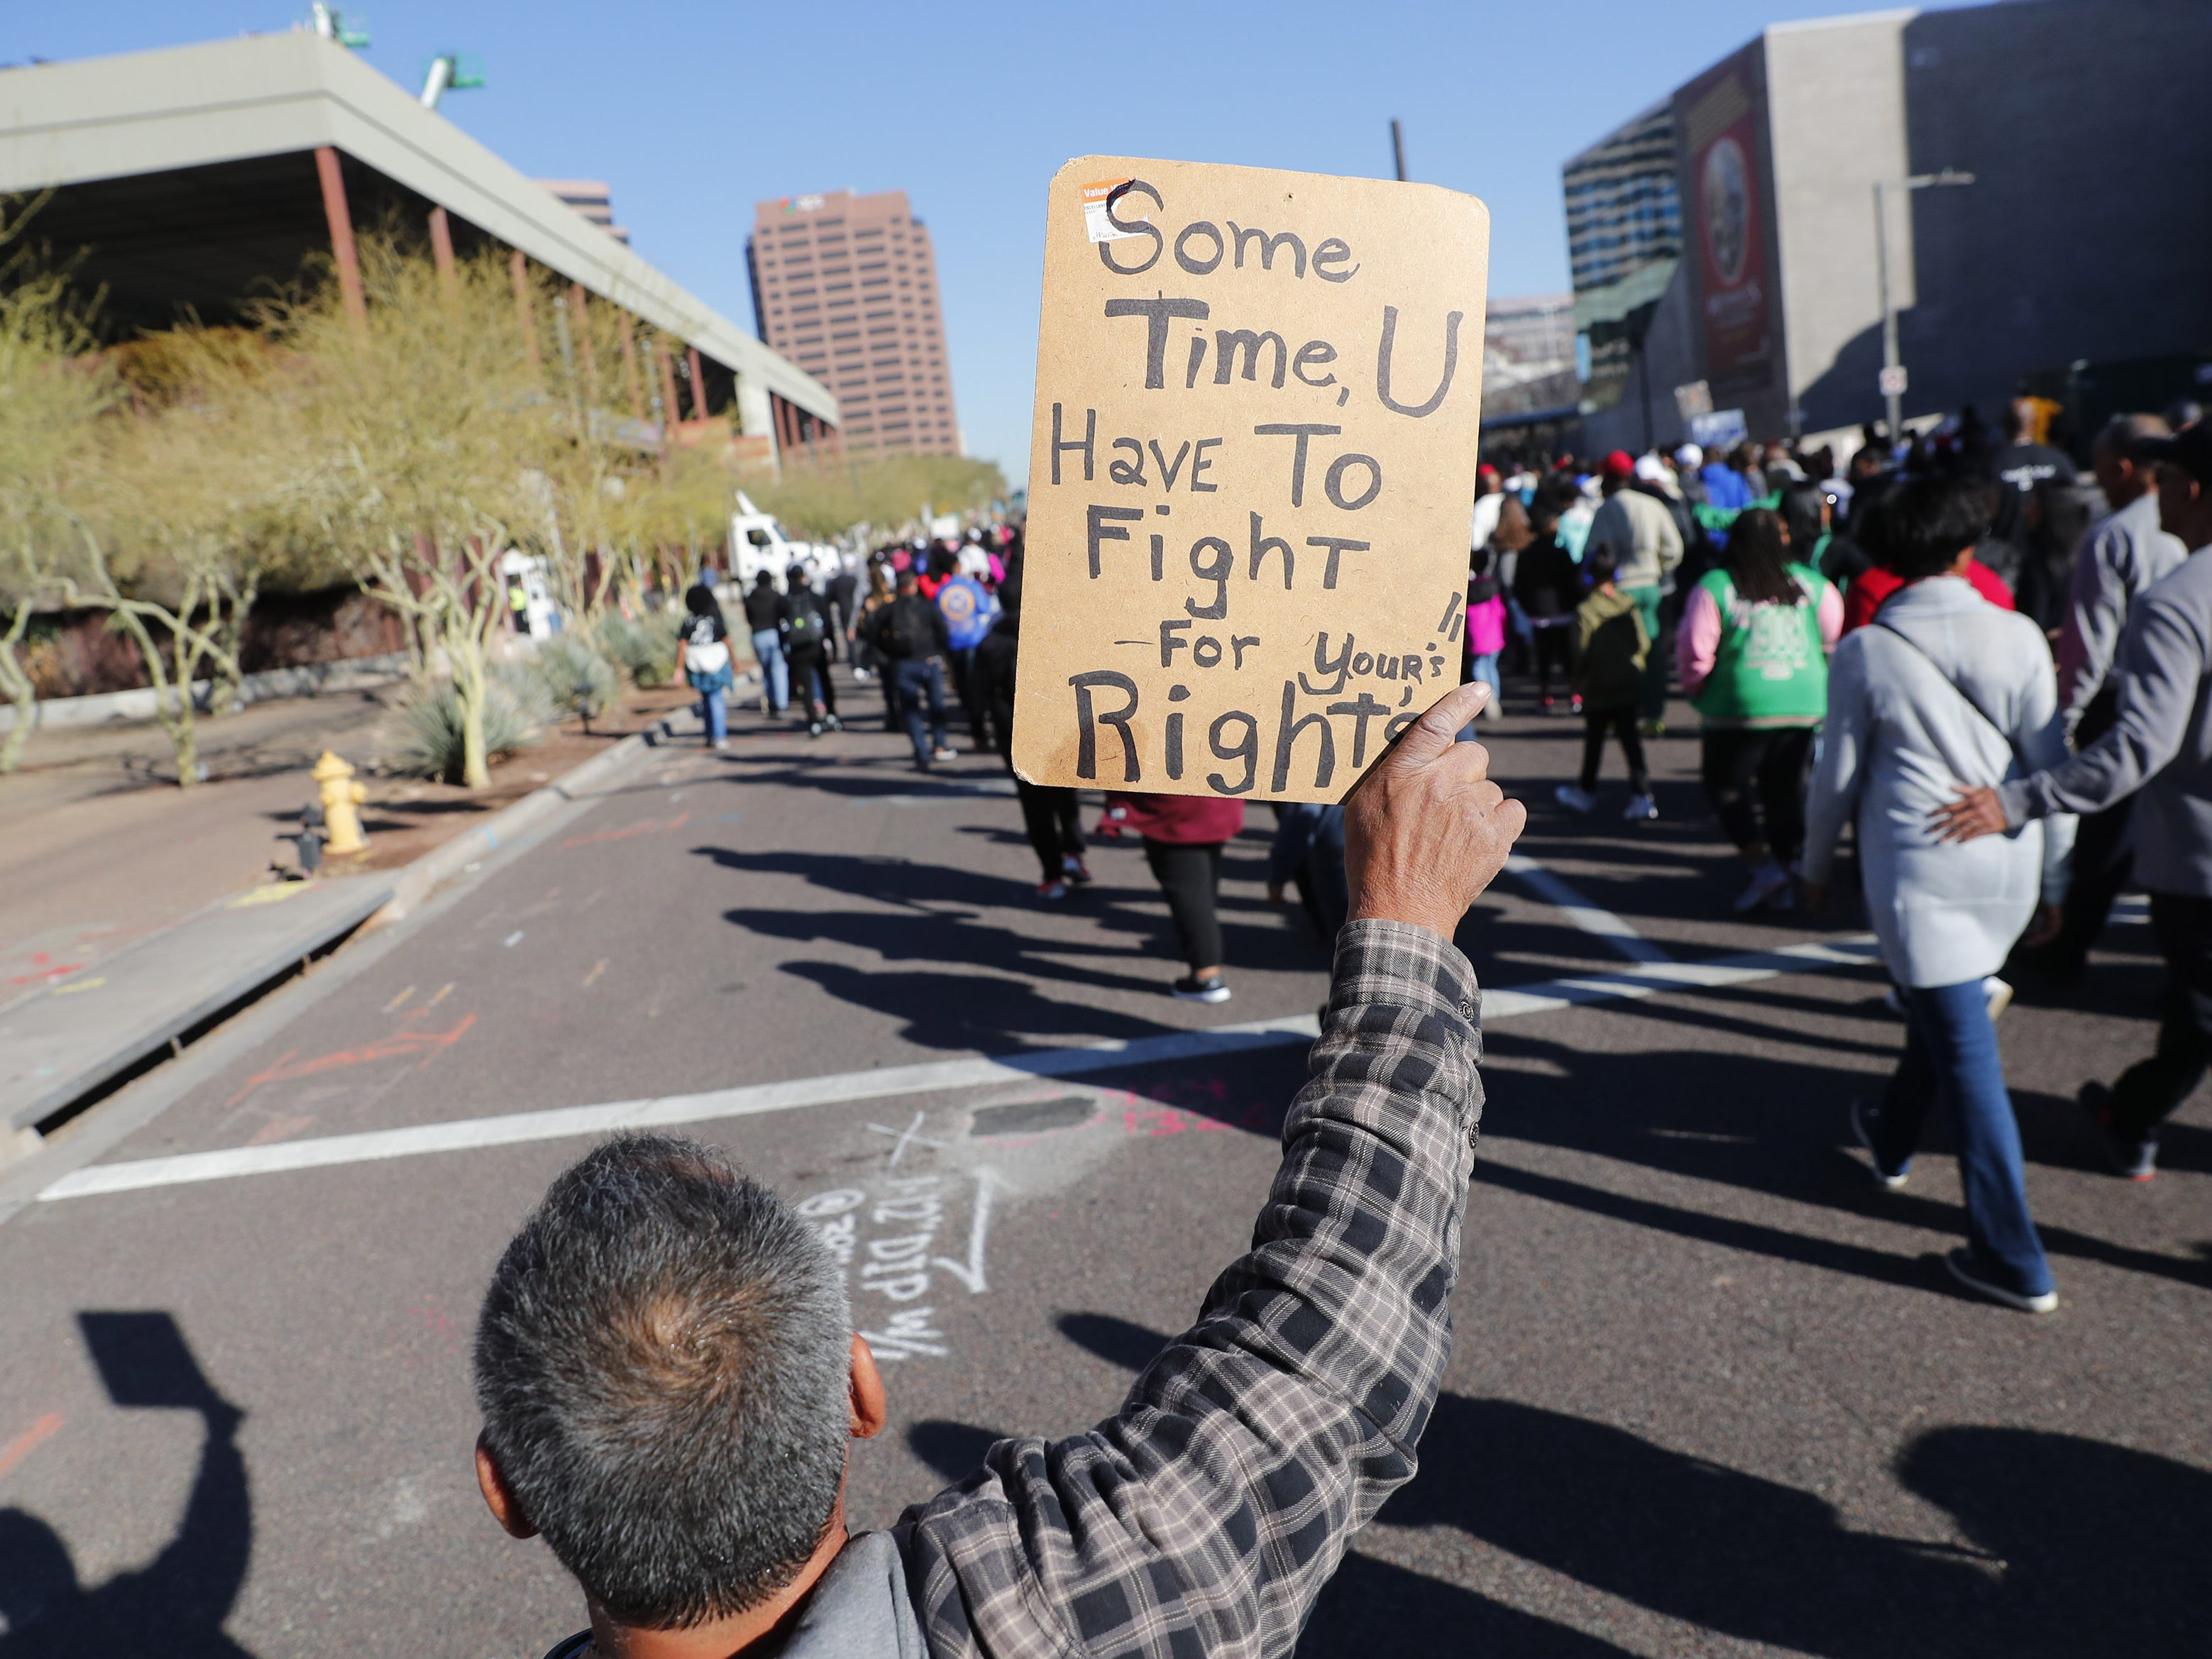 Robert Soria, 62 from Phoenix, holds a sign while marching with others honoring Dr. Martin Luther King in downtown Phoenix, Ariz. January 21, 2019. The march is symbolic of Dr. King's revolutionary 1968 march.